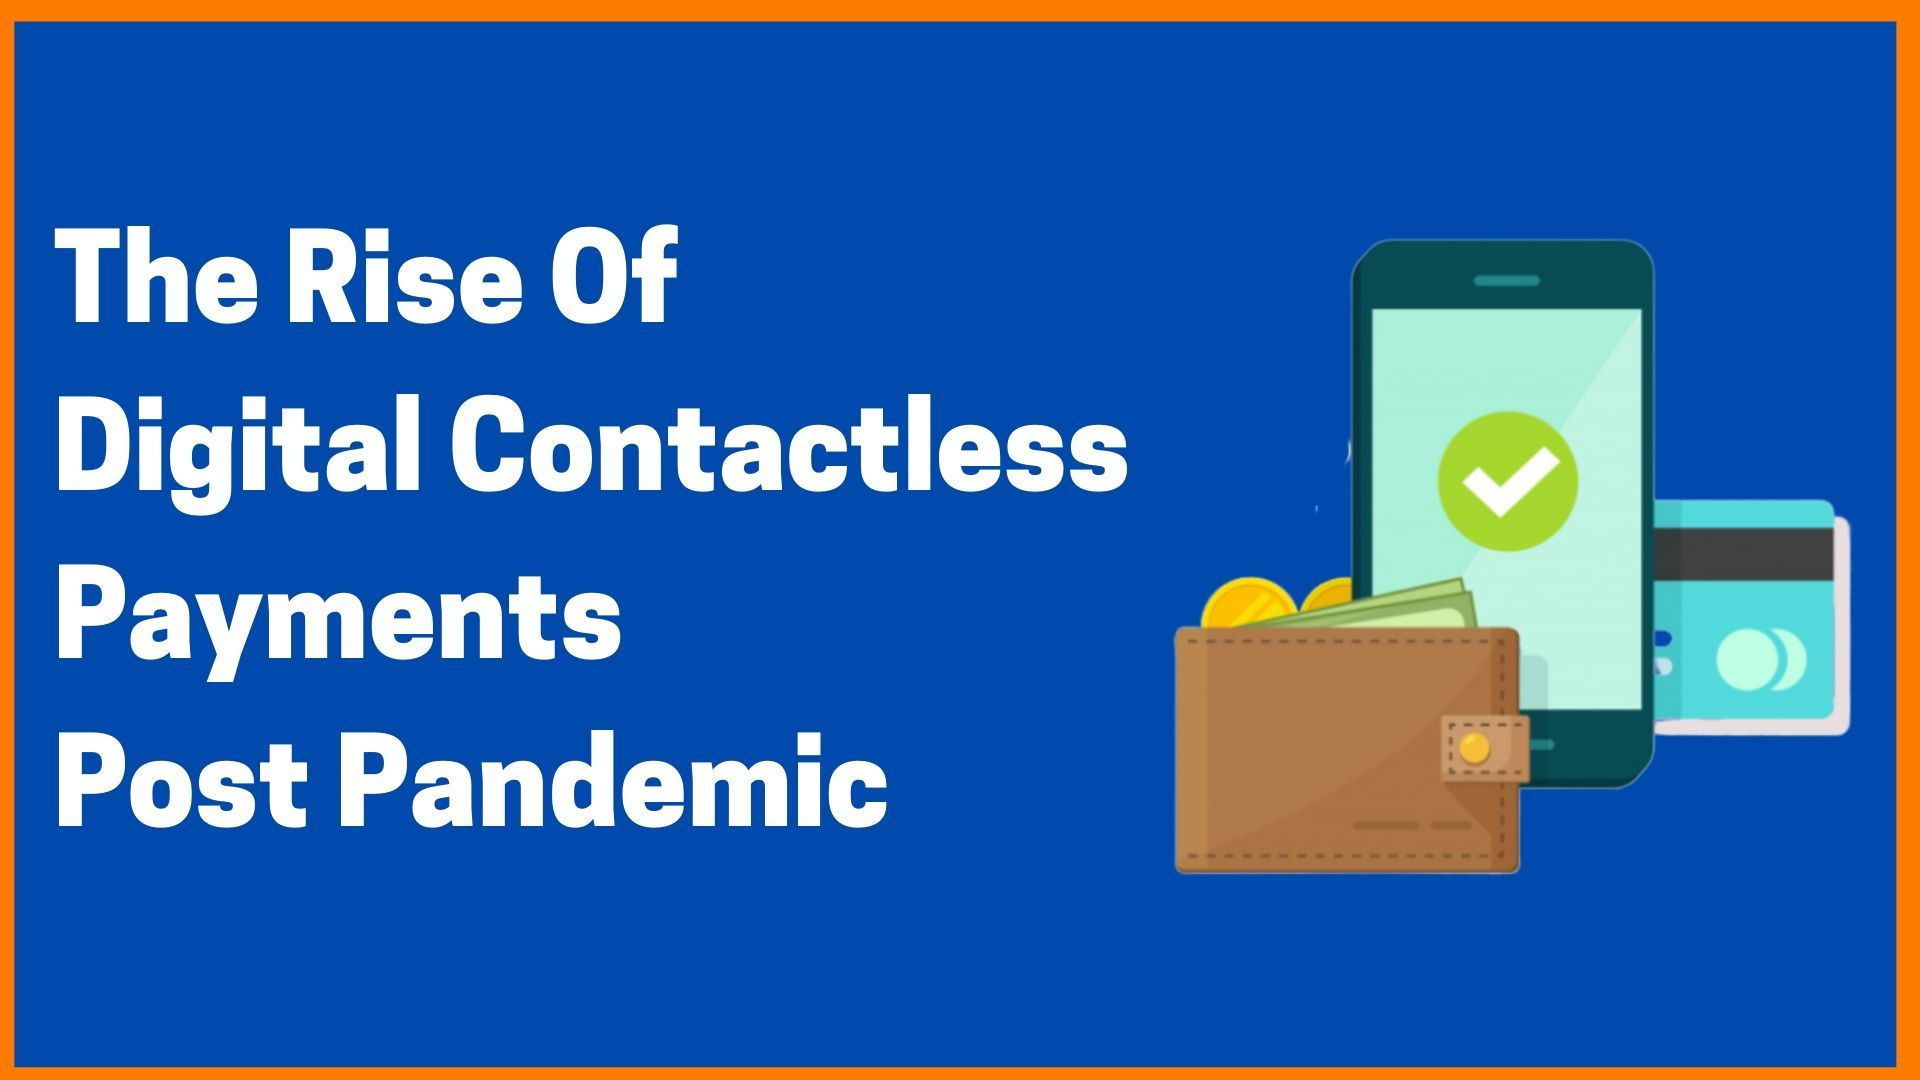 The Rise Of Digital Contactless Payments Post The COVID-19 Pandemic